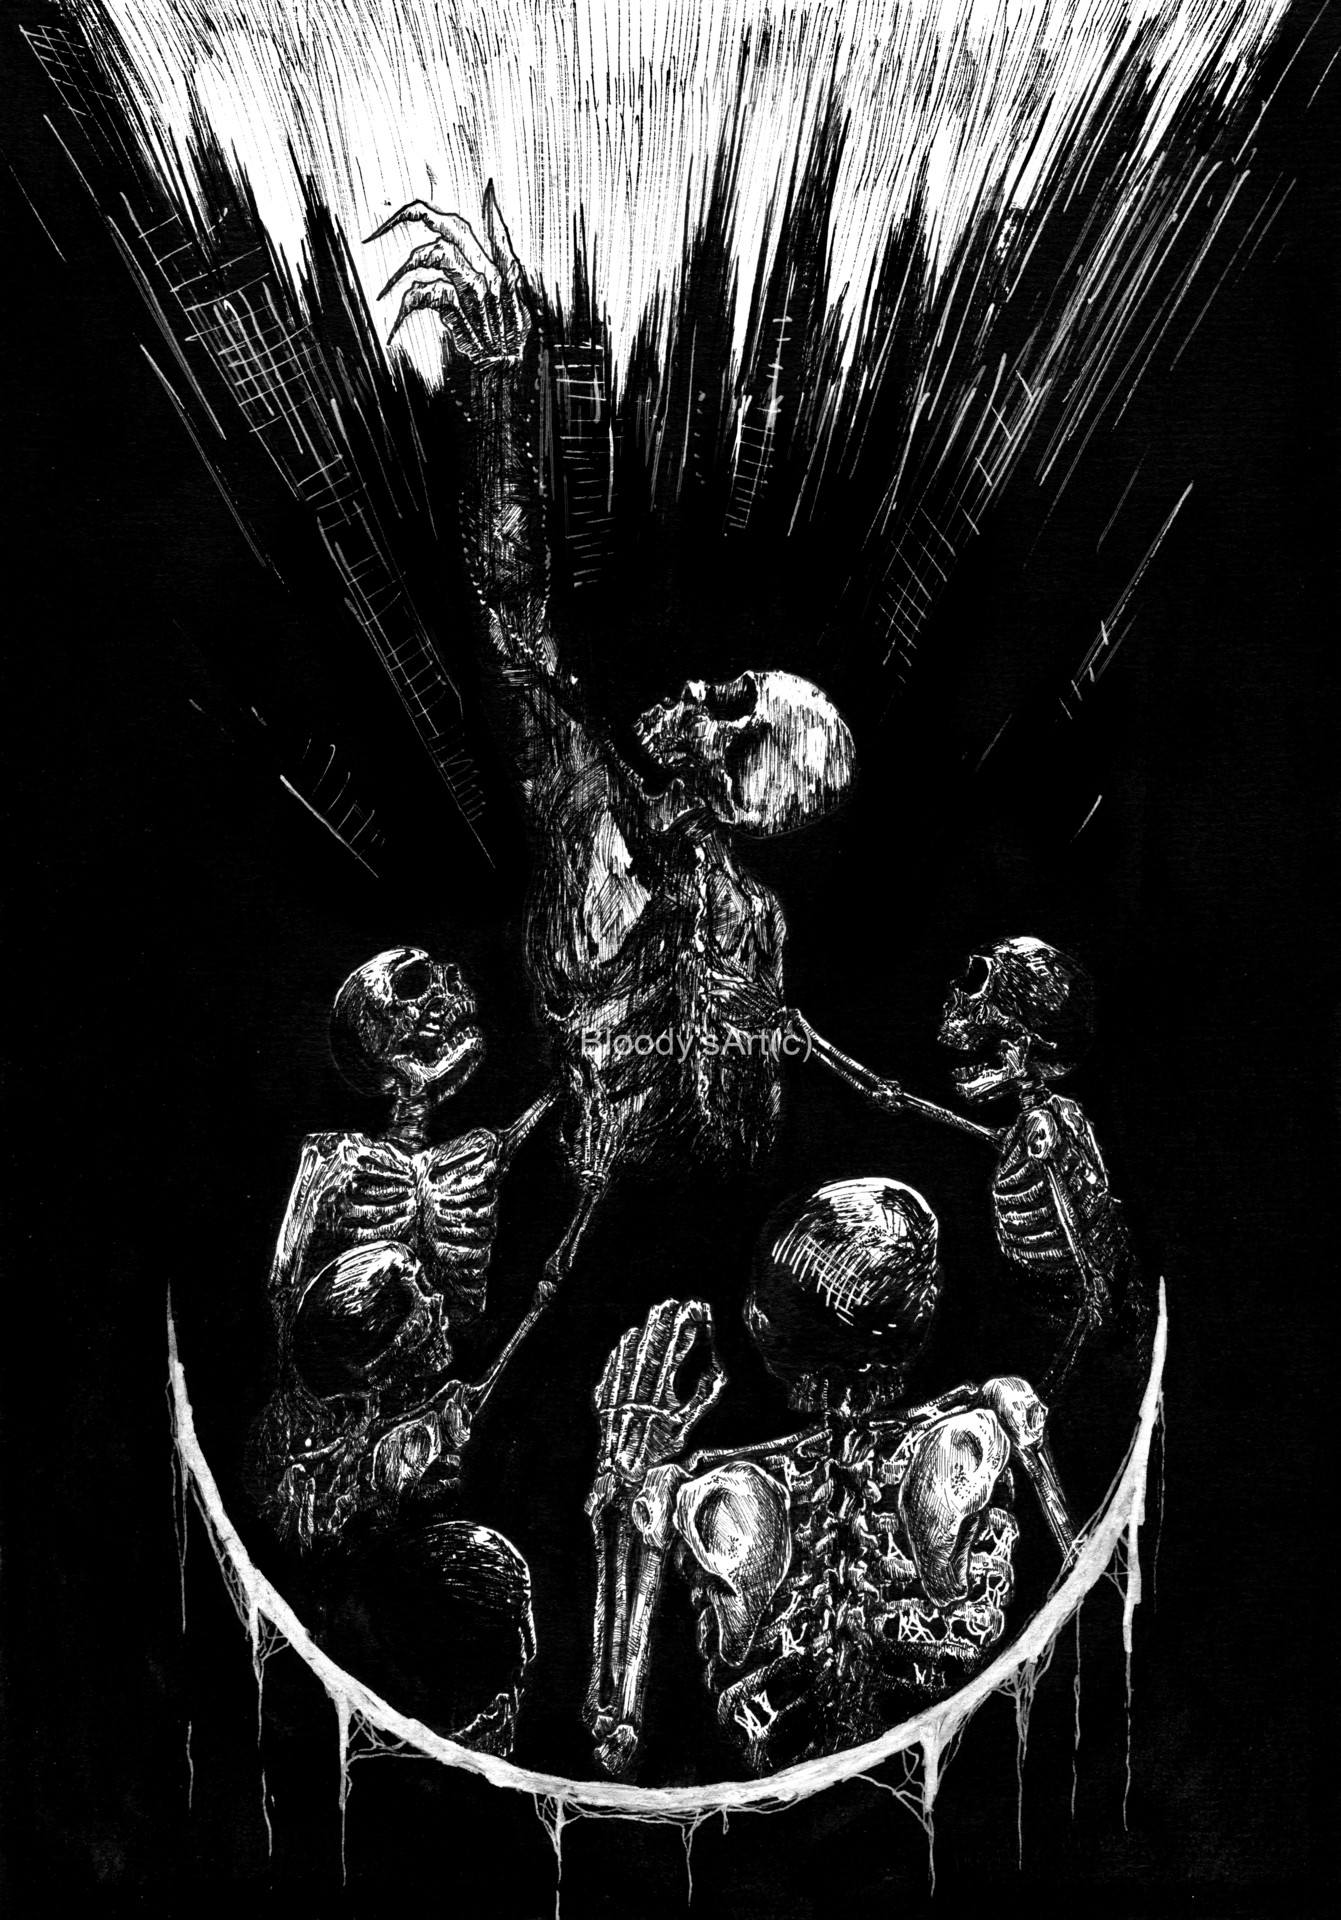 Trapped In The Abyss par Bloodyspiriit